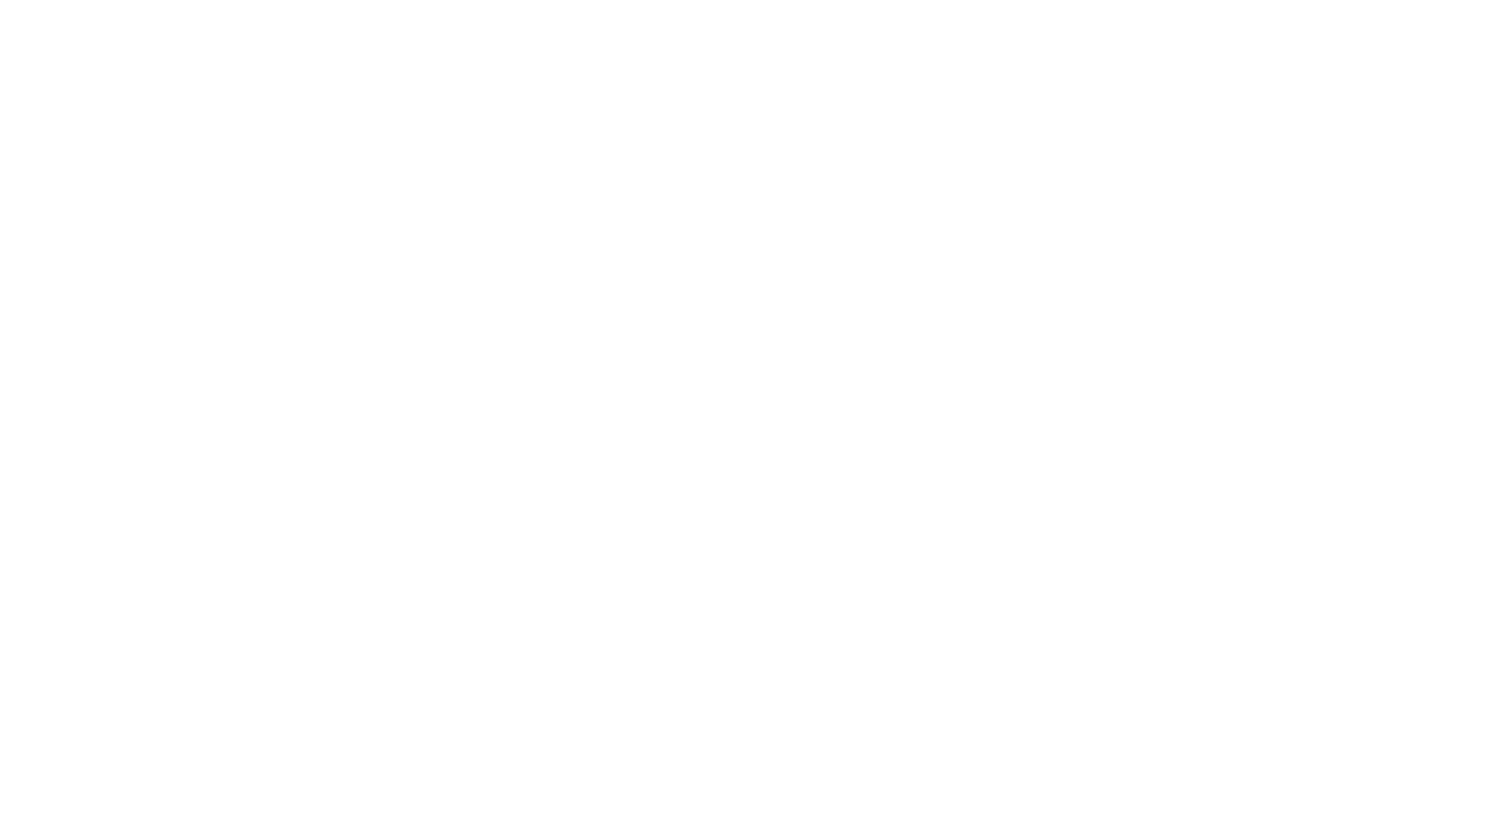 Juanita Healy for Alabama House District 4